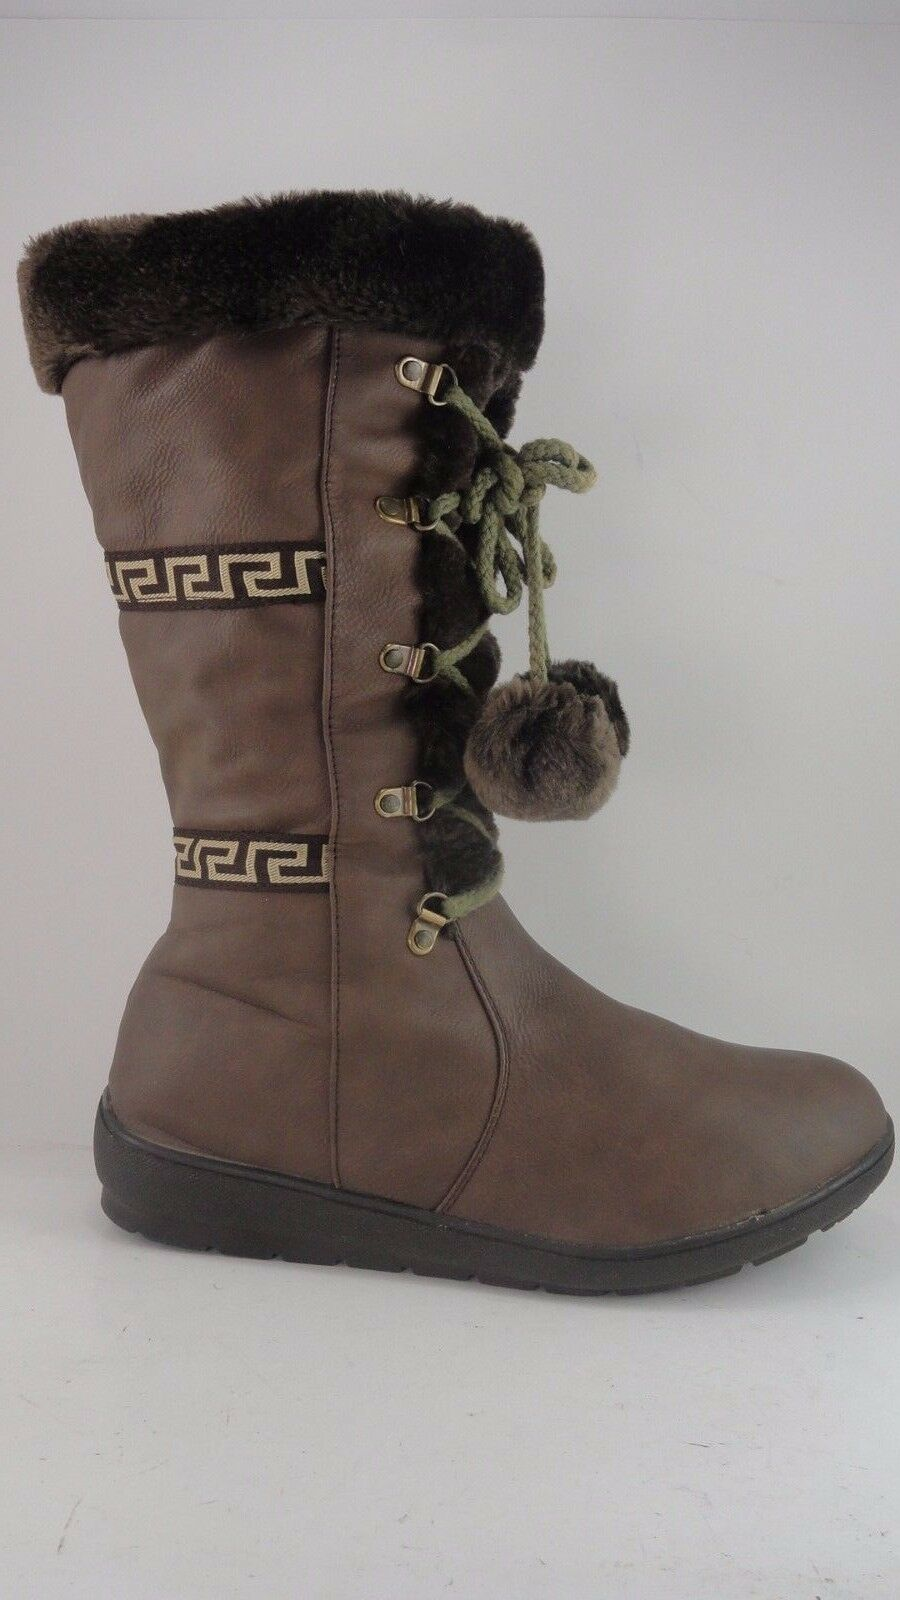 Reneeze Boots Brown Side zip Faux Fur Lining Pom Poms Size Womens US 10 EU 41